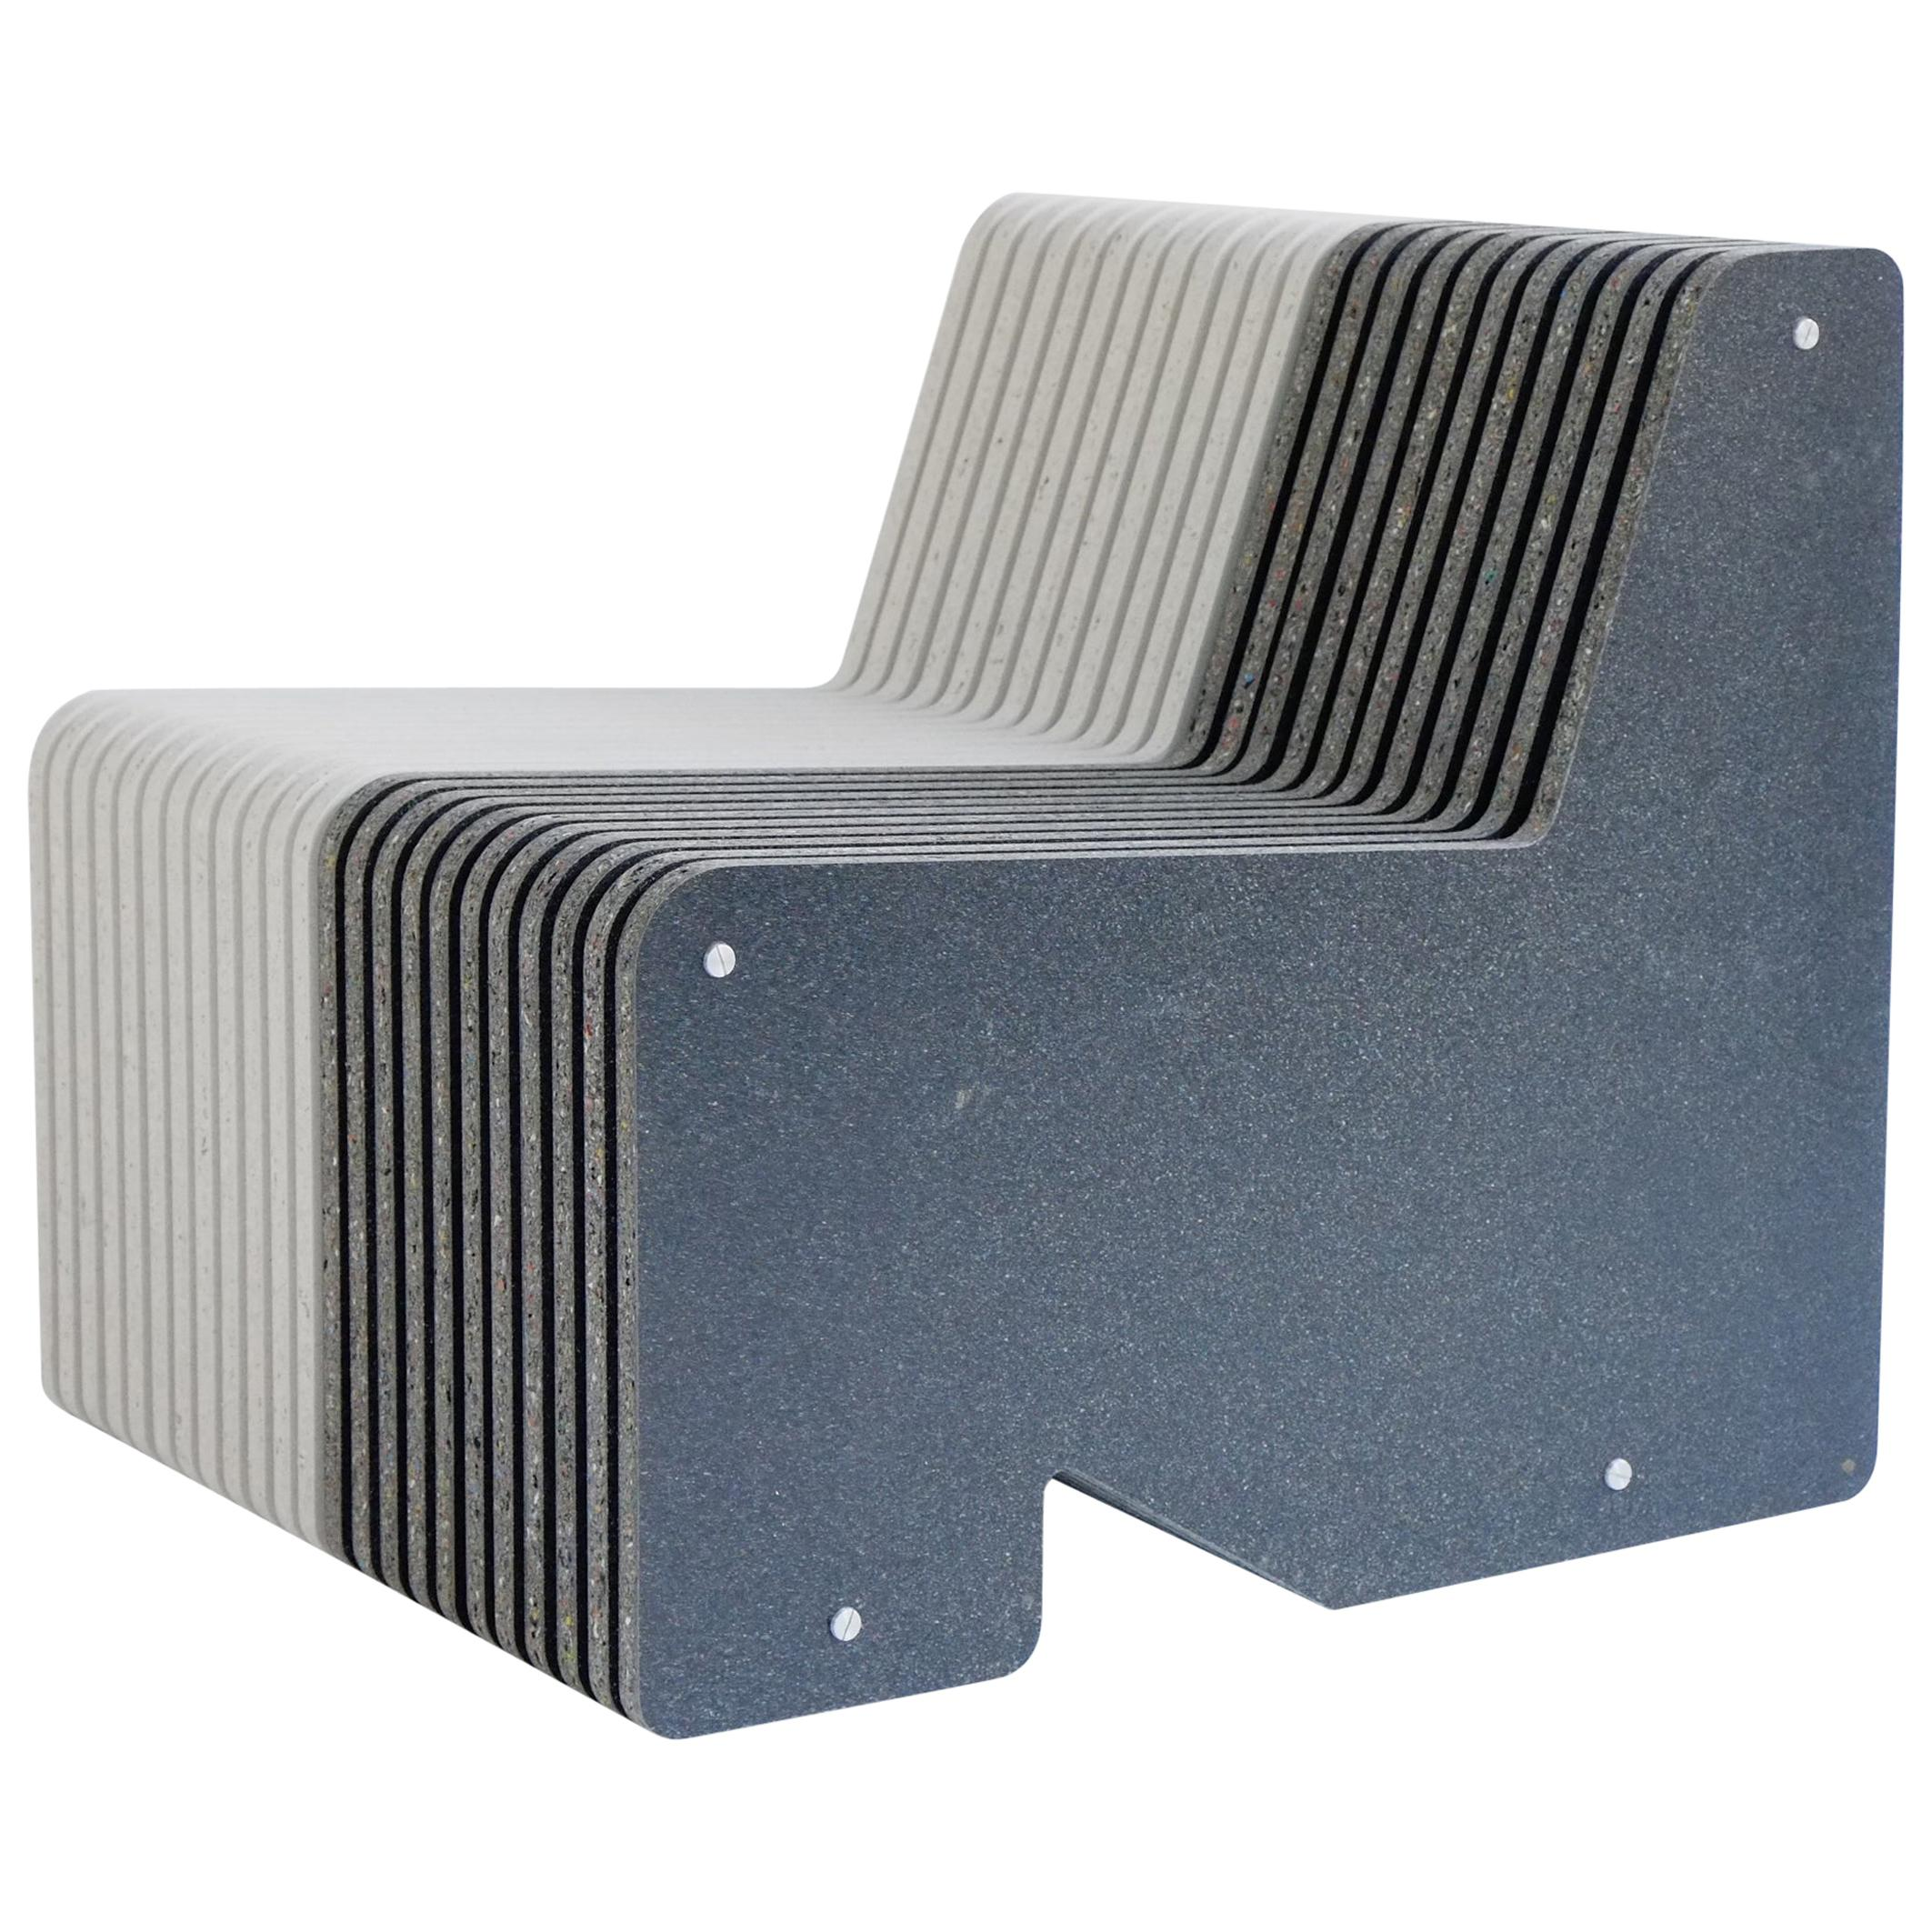 Jää Armchair Made with 100% Recycled Plastic